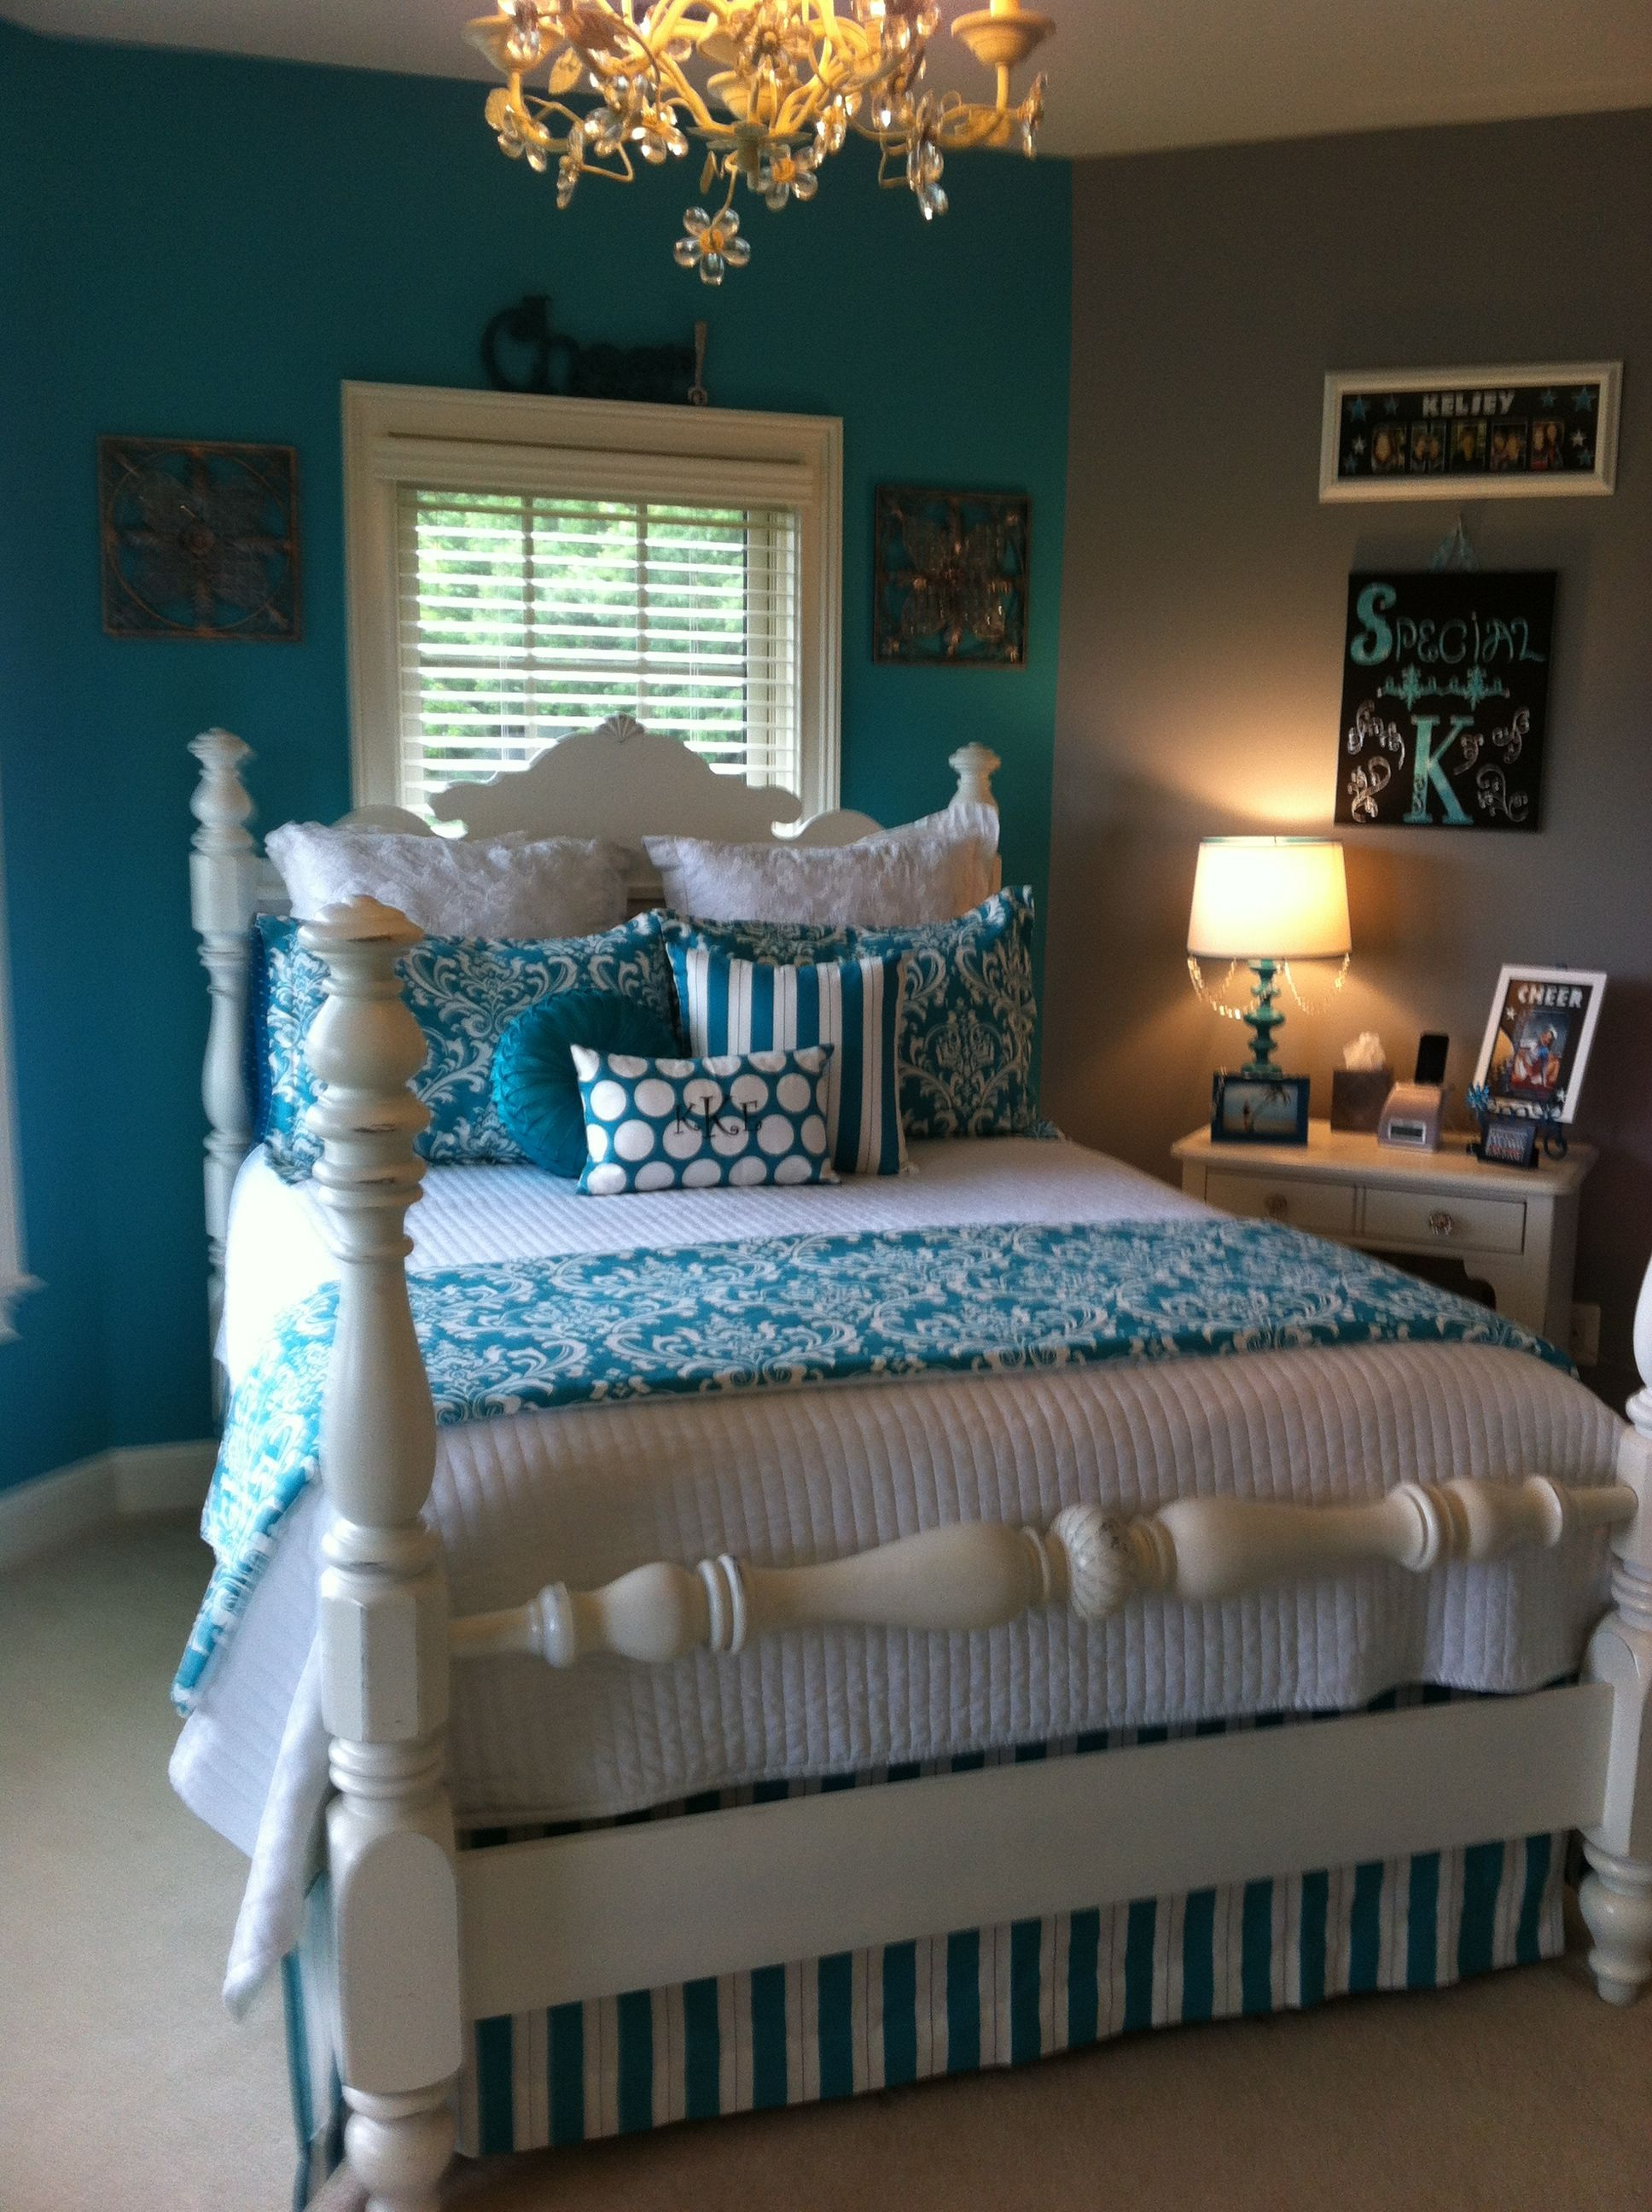 Dark paint ideas for bedroom  Turquoise room ideas decorations decor paint bedroom stairs